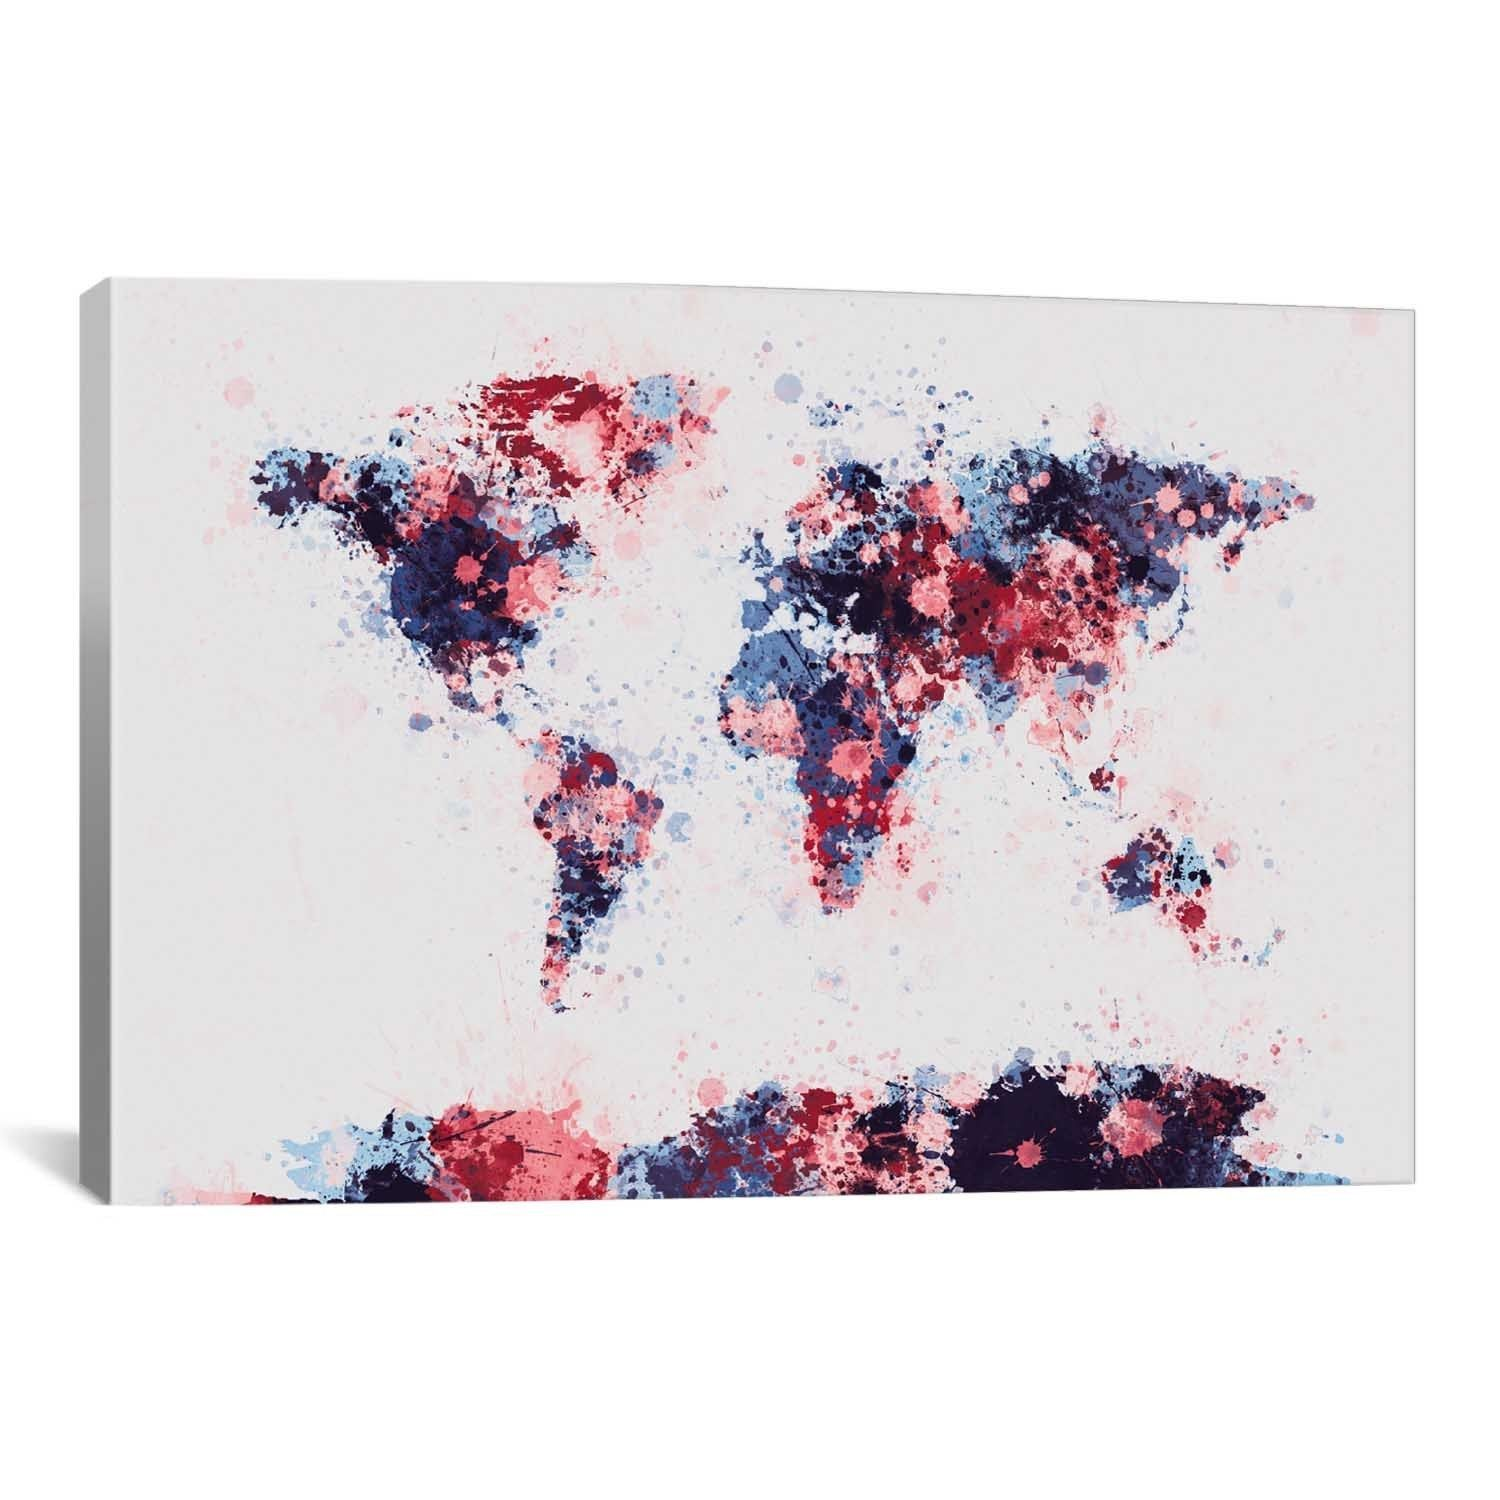 Icanvas michael thompsett world map paint drops ii canvas print wall art